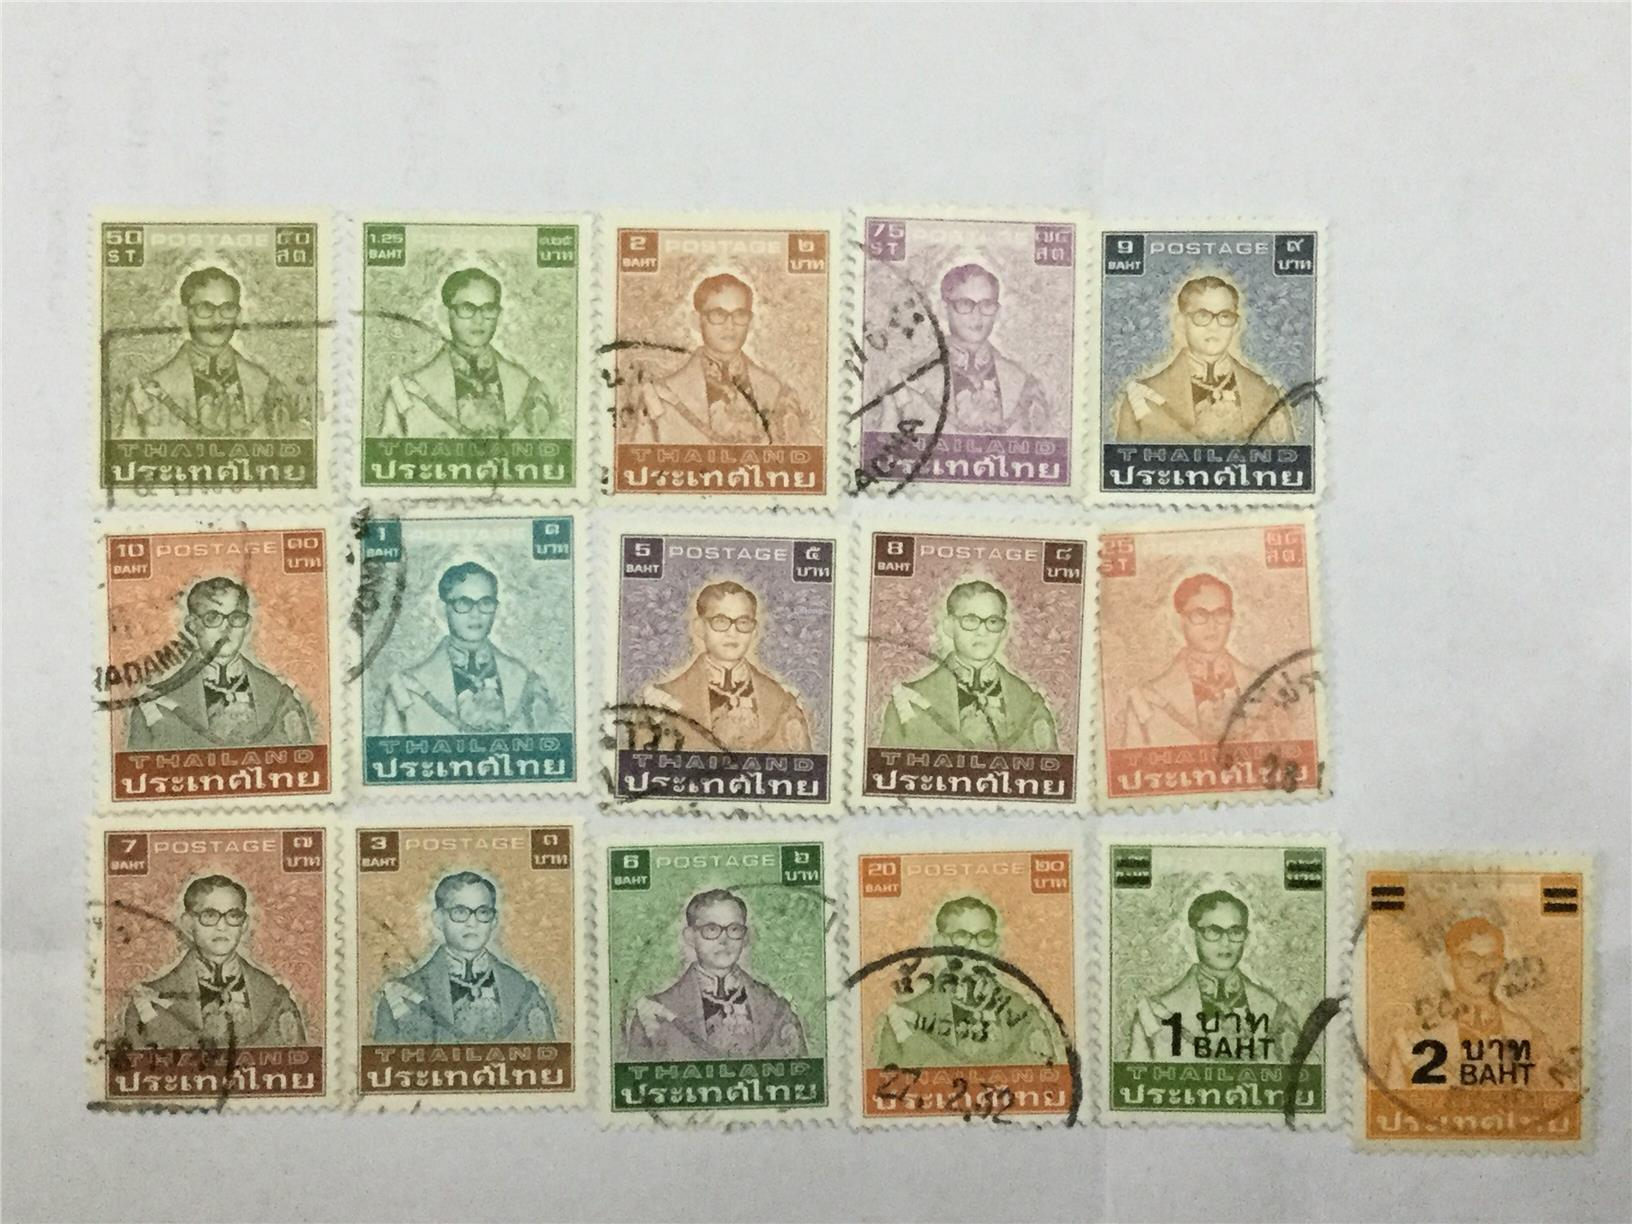 1980 Siam Thailand Nice Stamps Lot 6